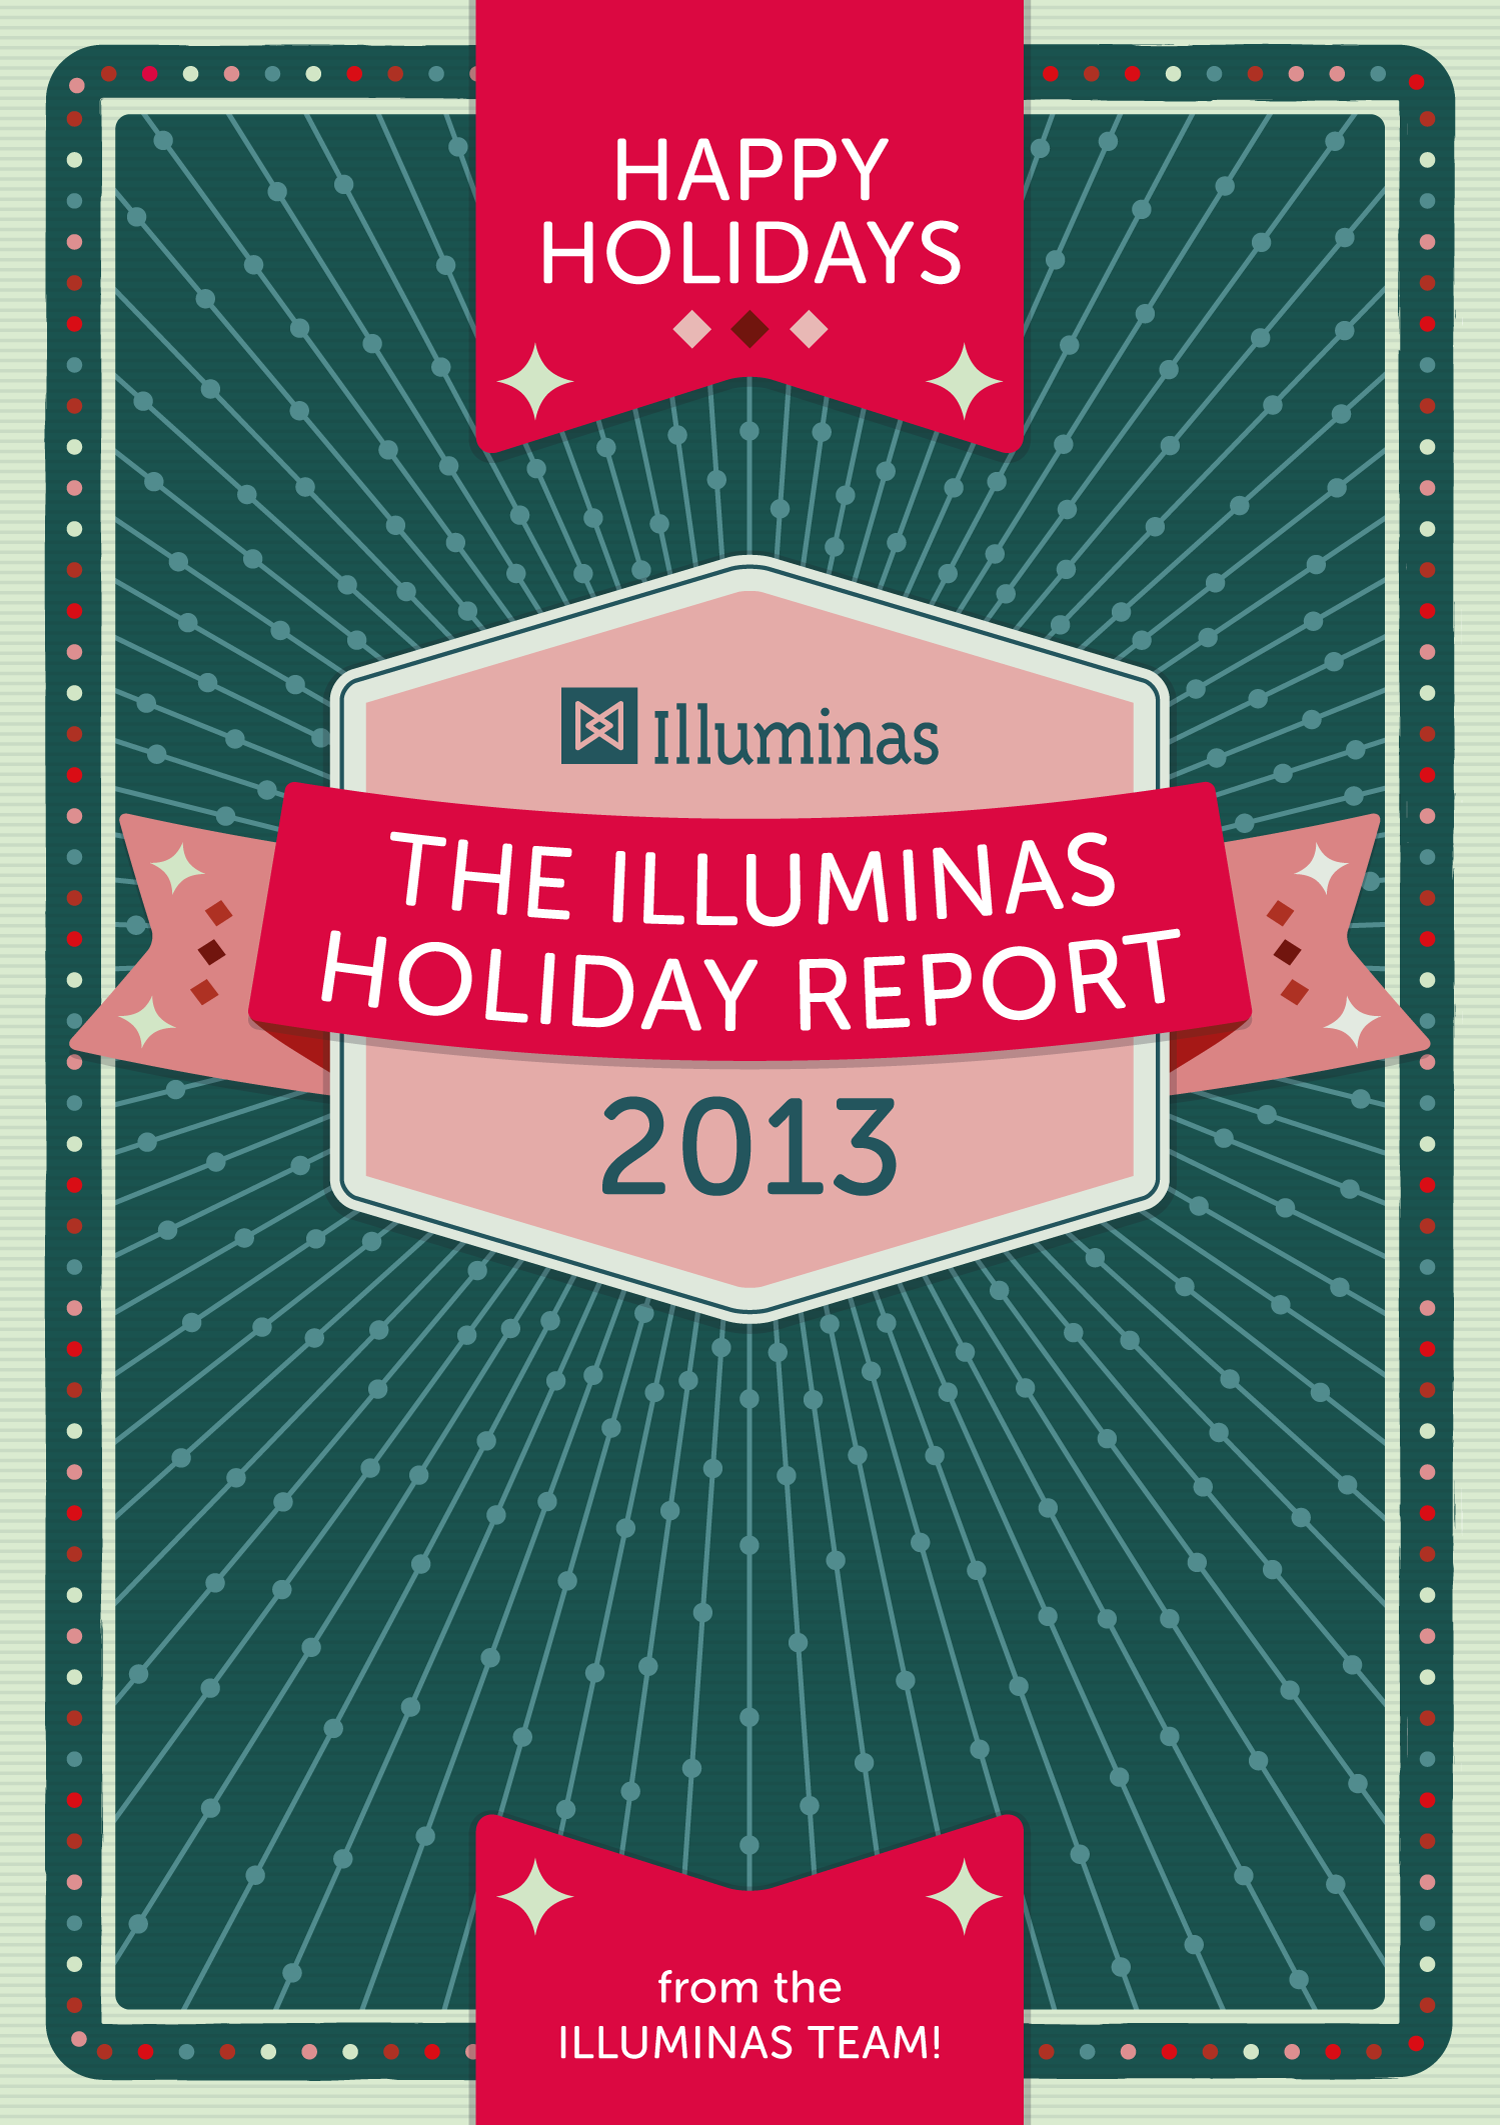 Holiday Report Card | Illuminas | Makemark